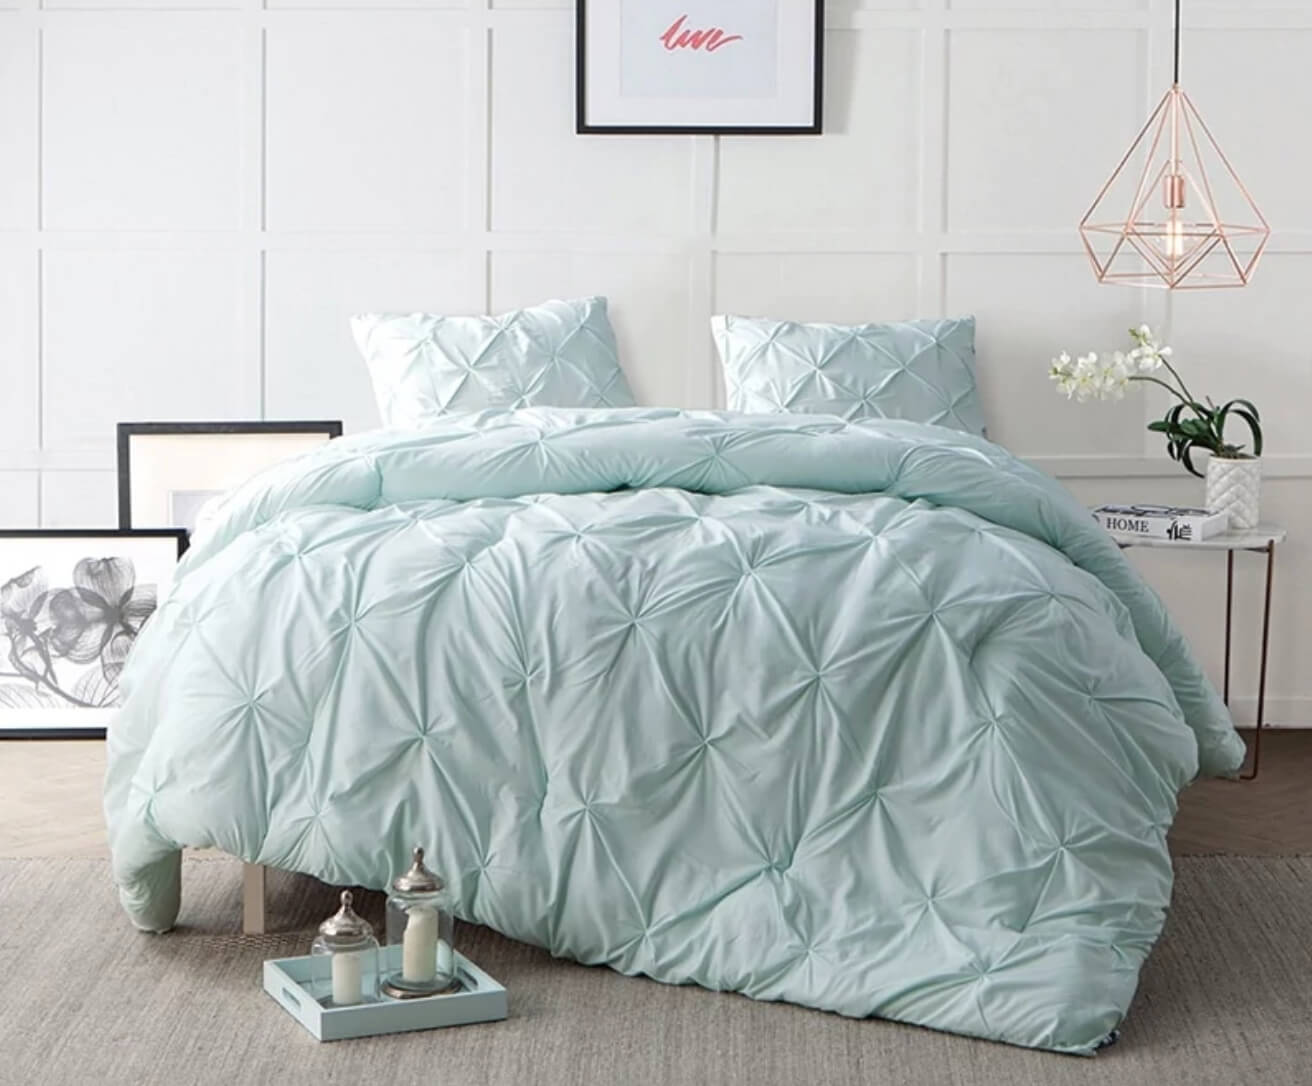 Captivating 20 Awesome Dorm Room Bedding Ideas For Inspiration